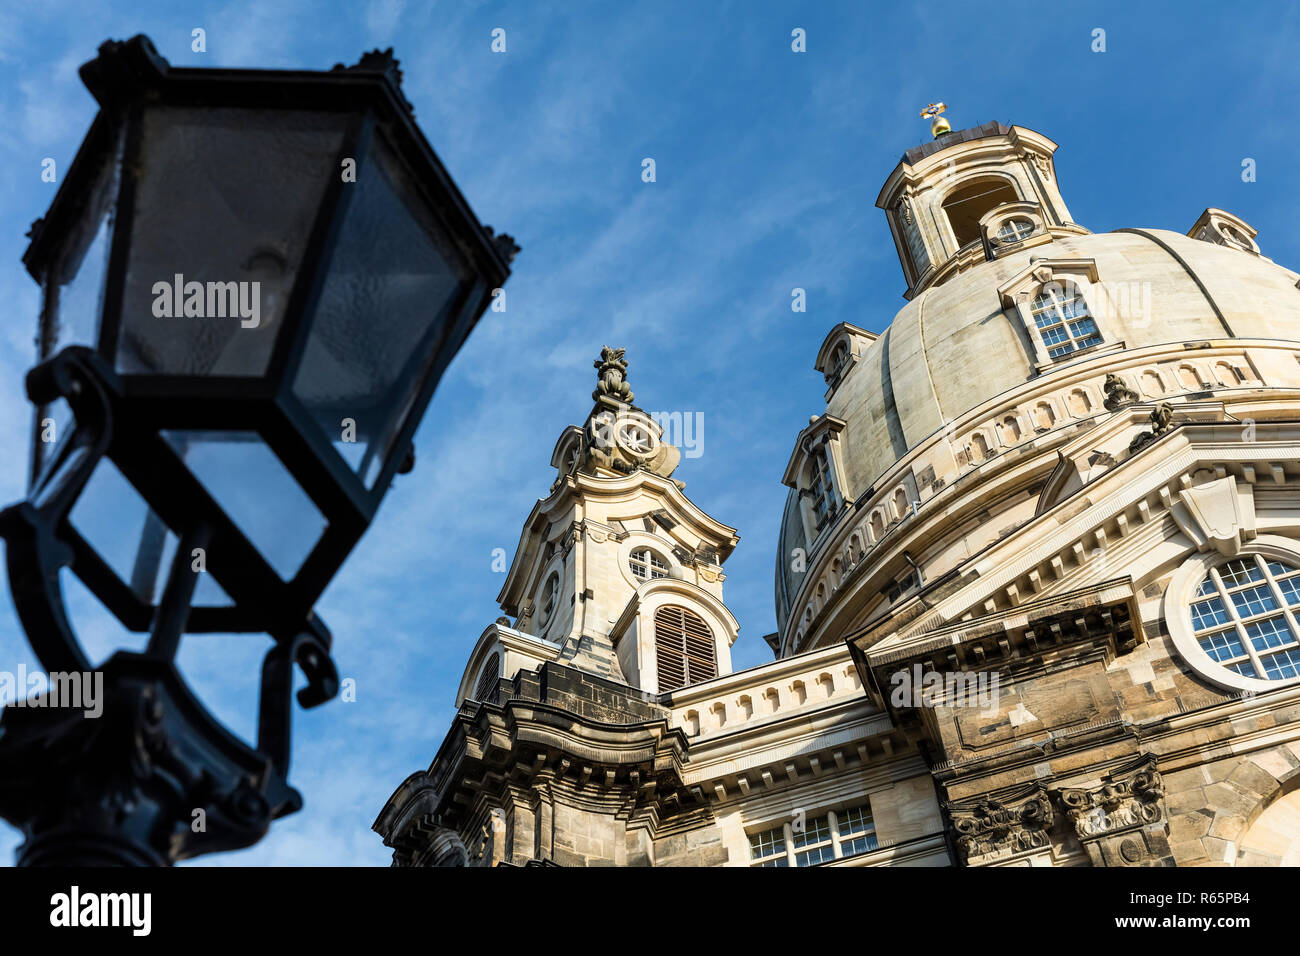 the dome of the frauenkirche - Stock Image